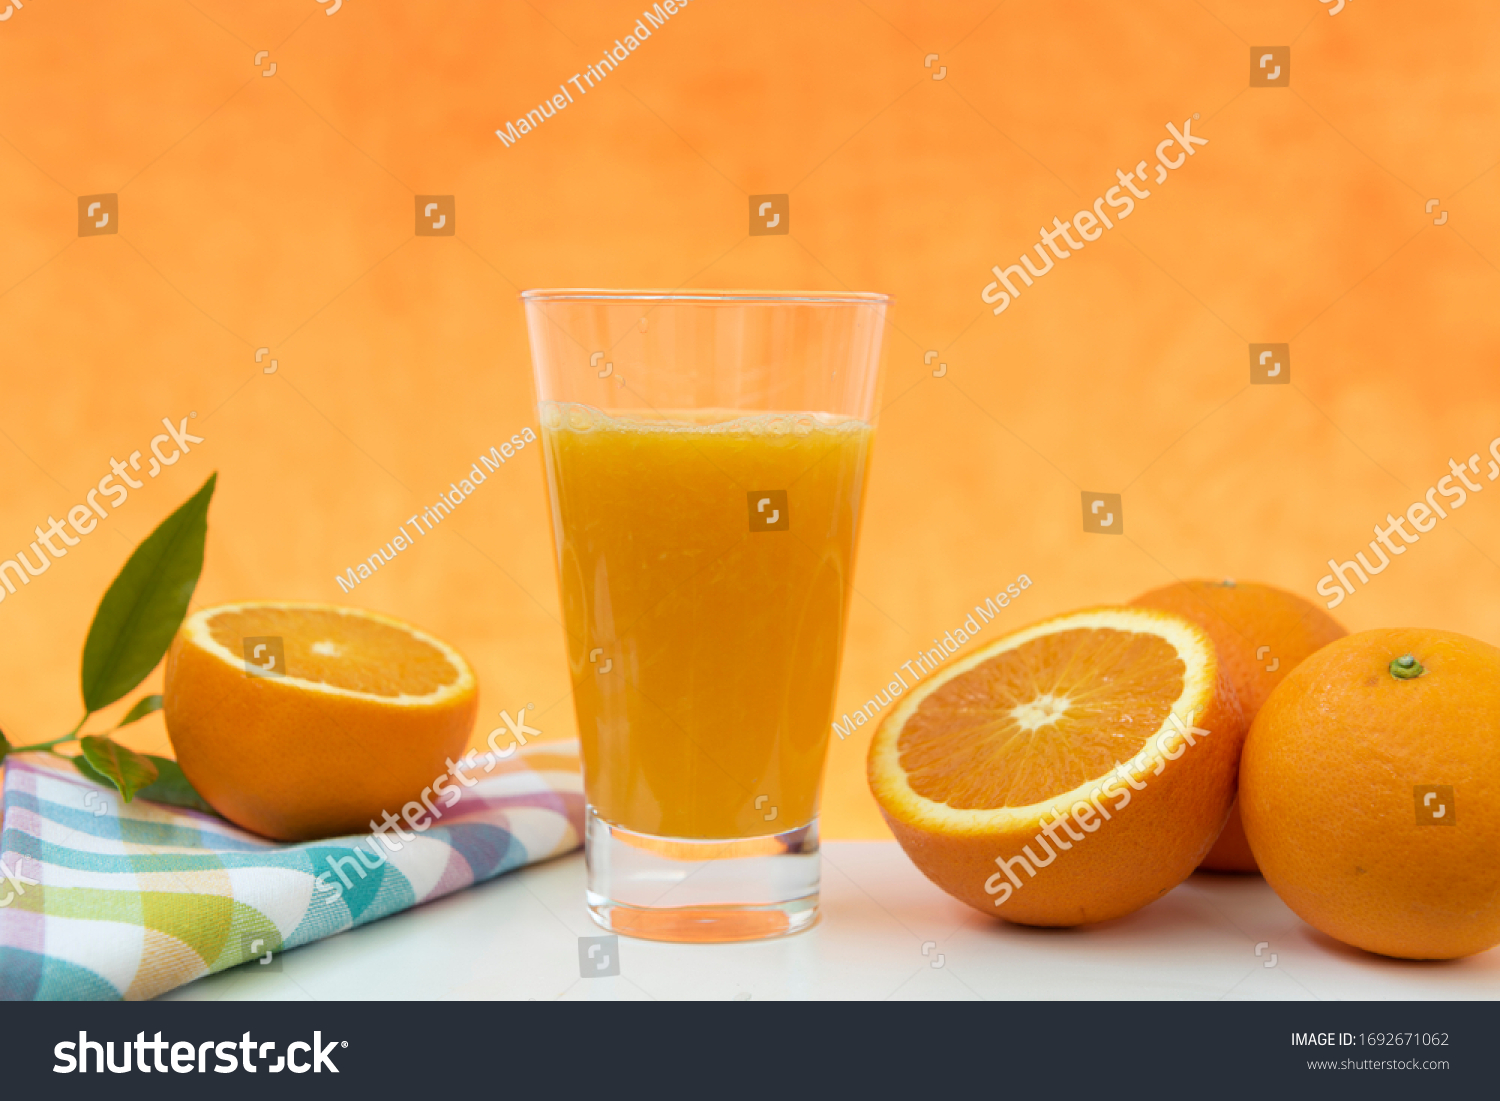 Glass of natural orange juice on orange background